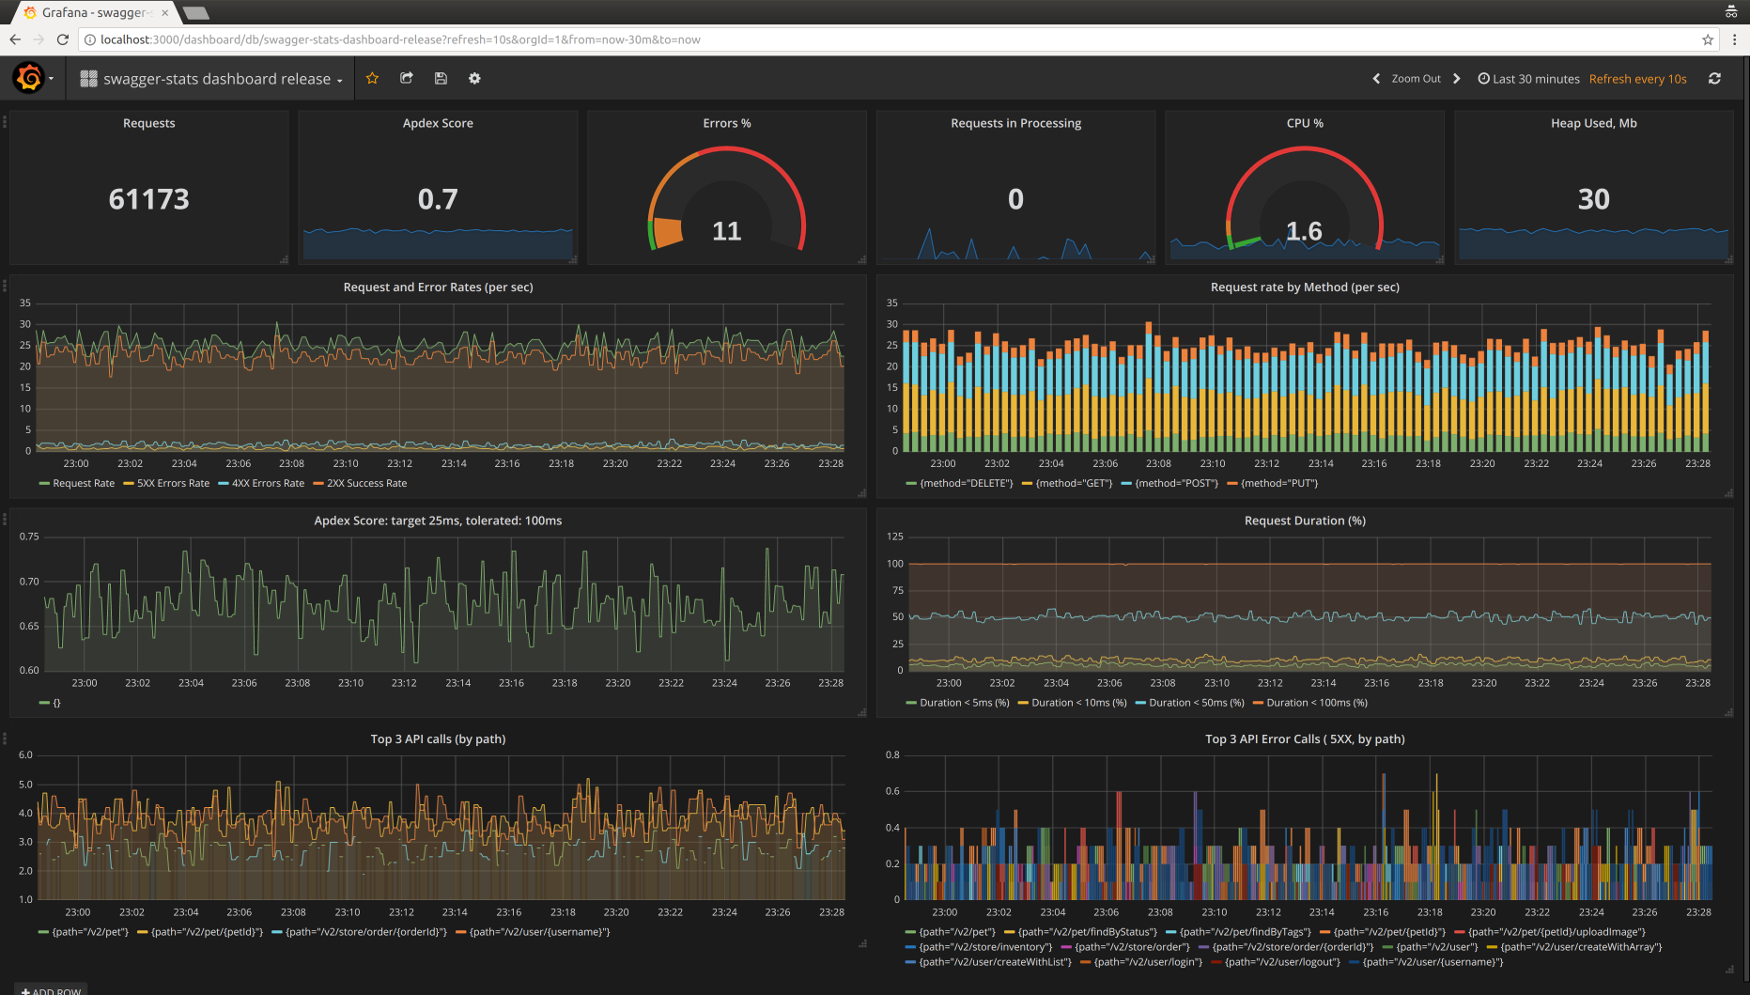 swagger-stats Prometheus Dashboard